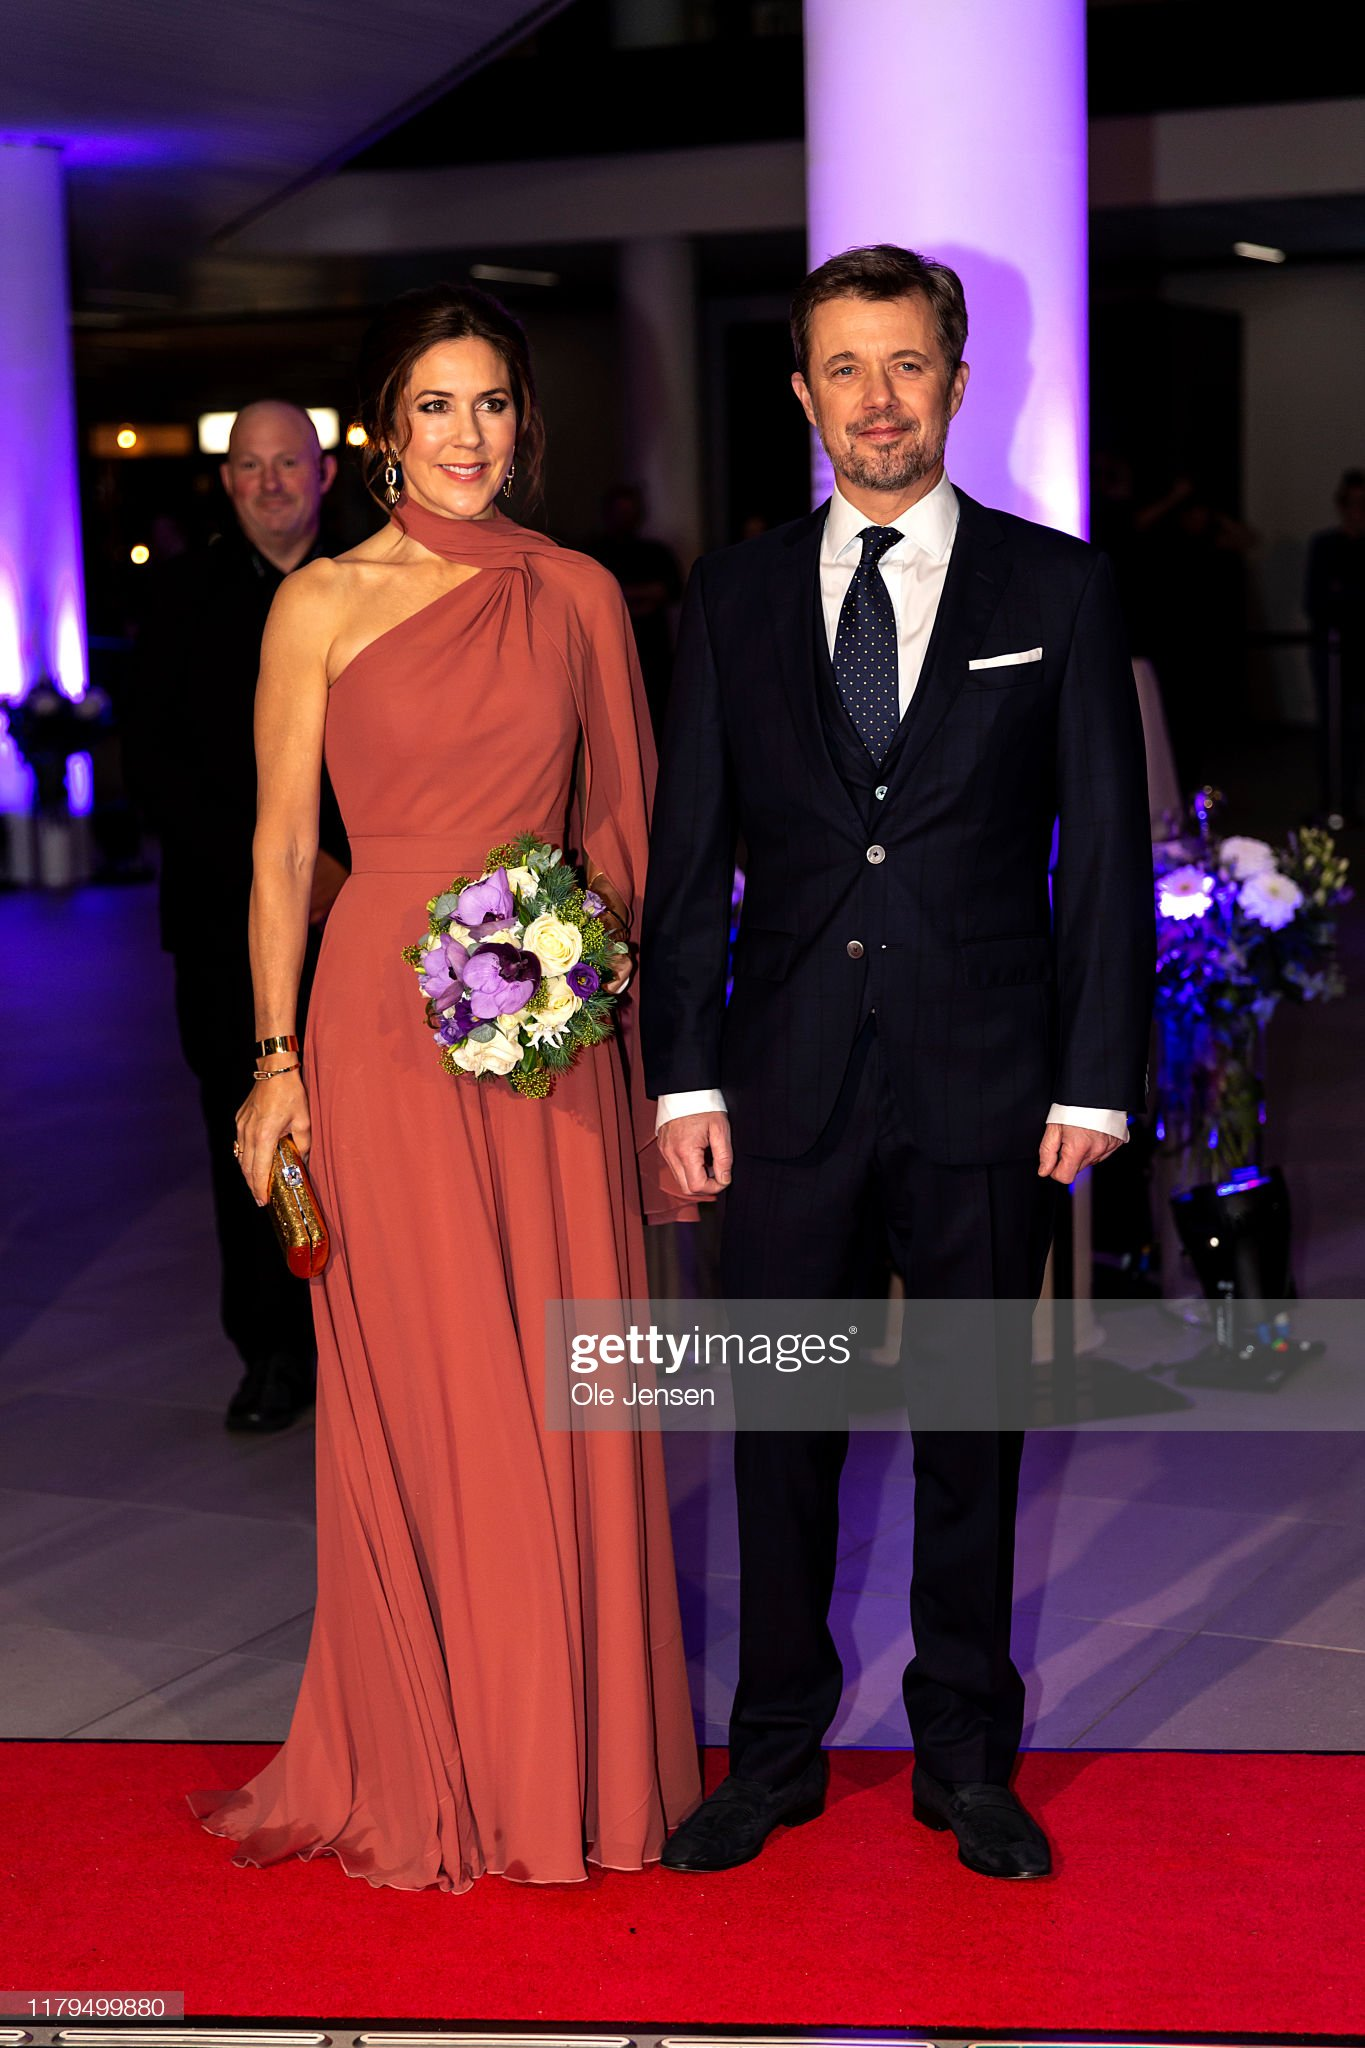 The Danish Crown Prince Couple's Awards In Odense : News Photo